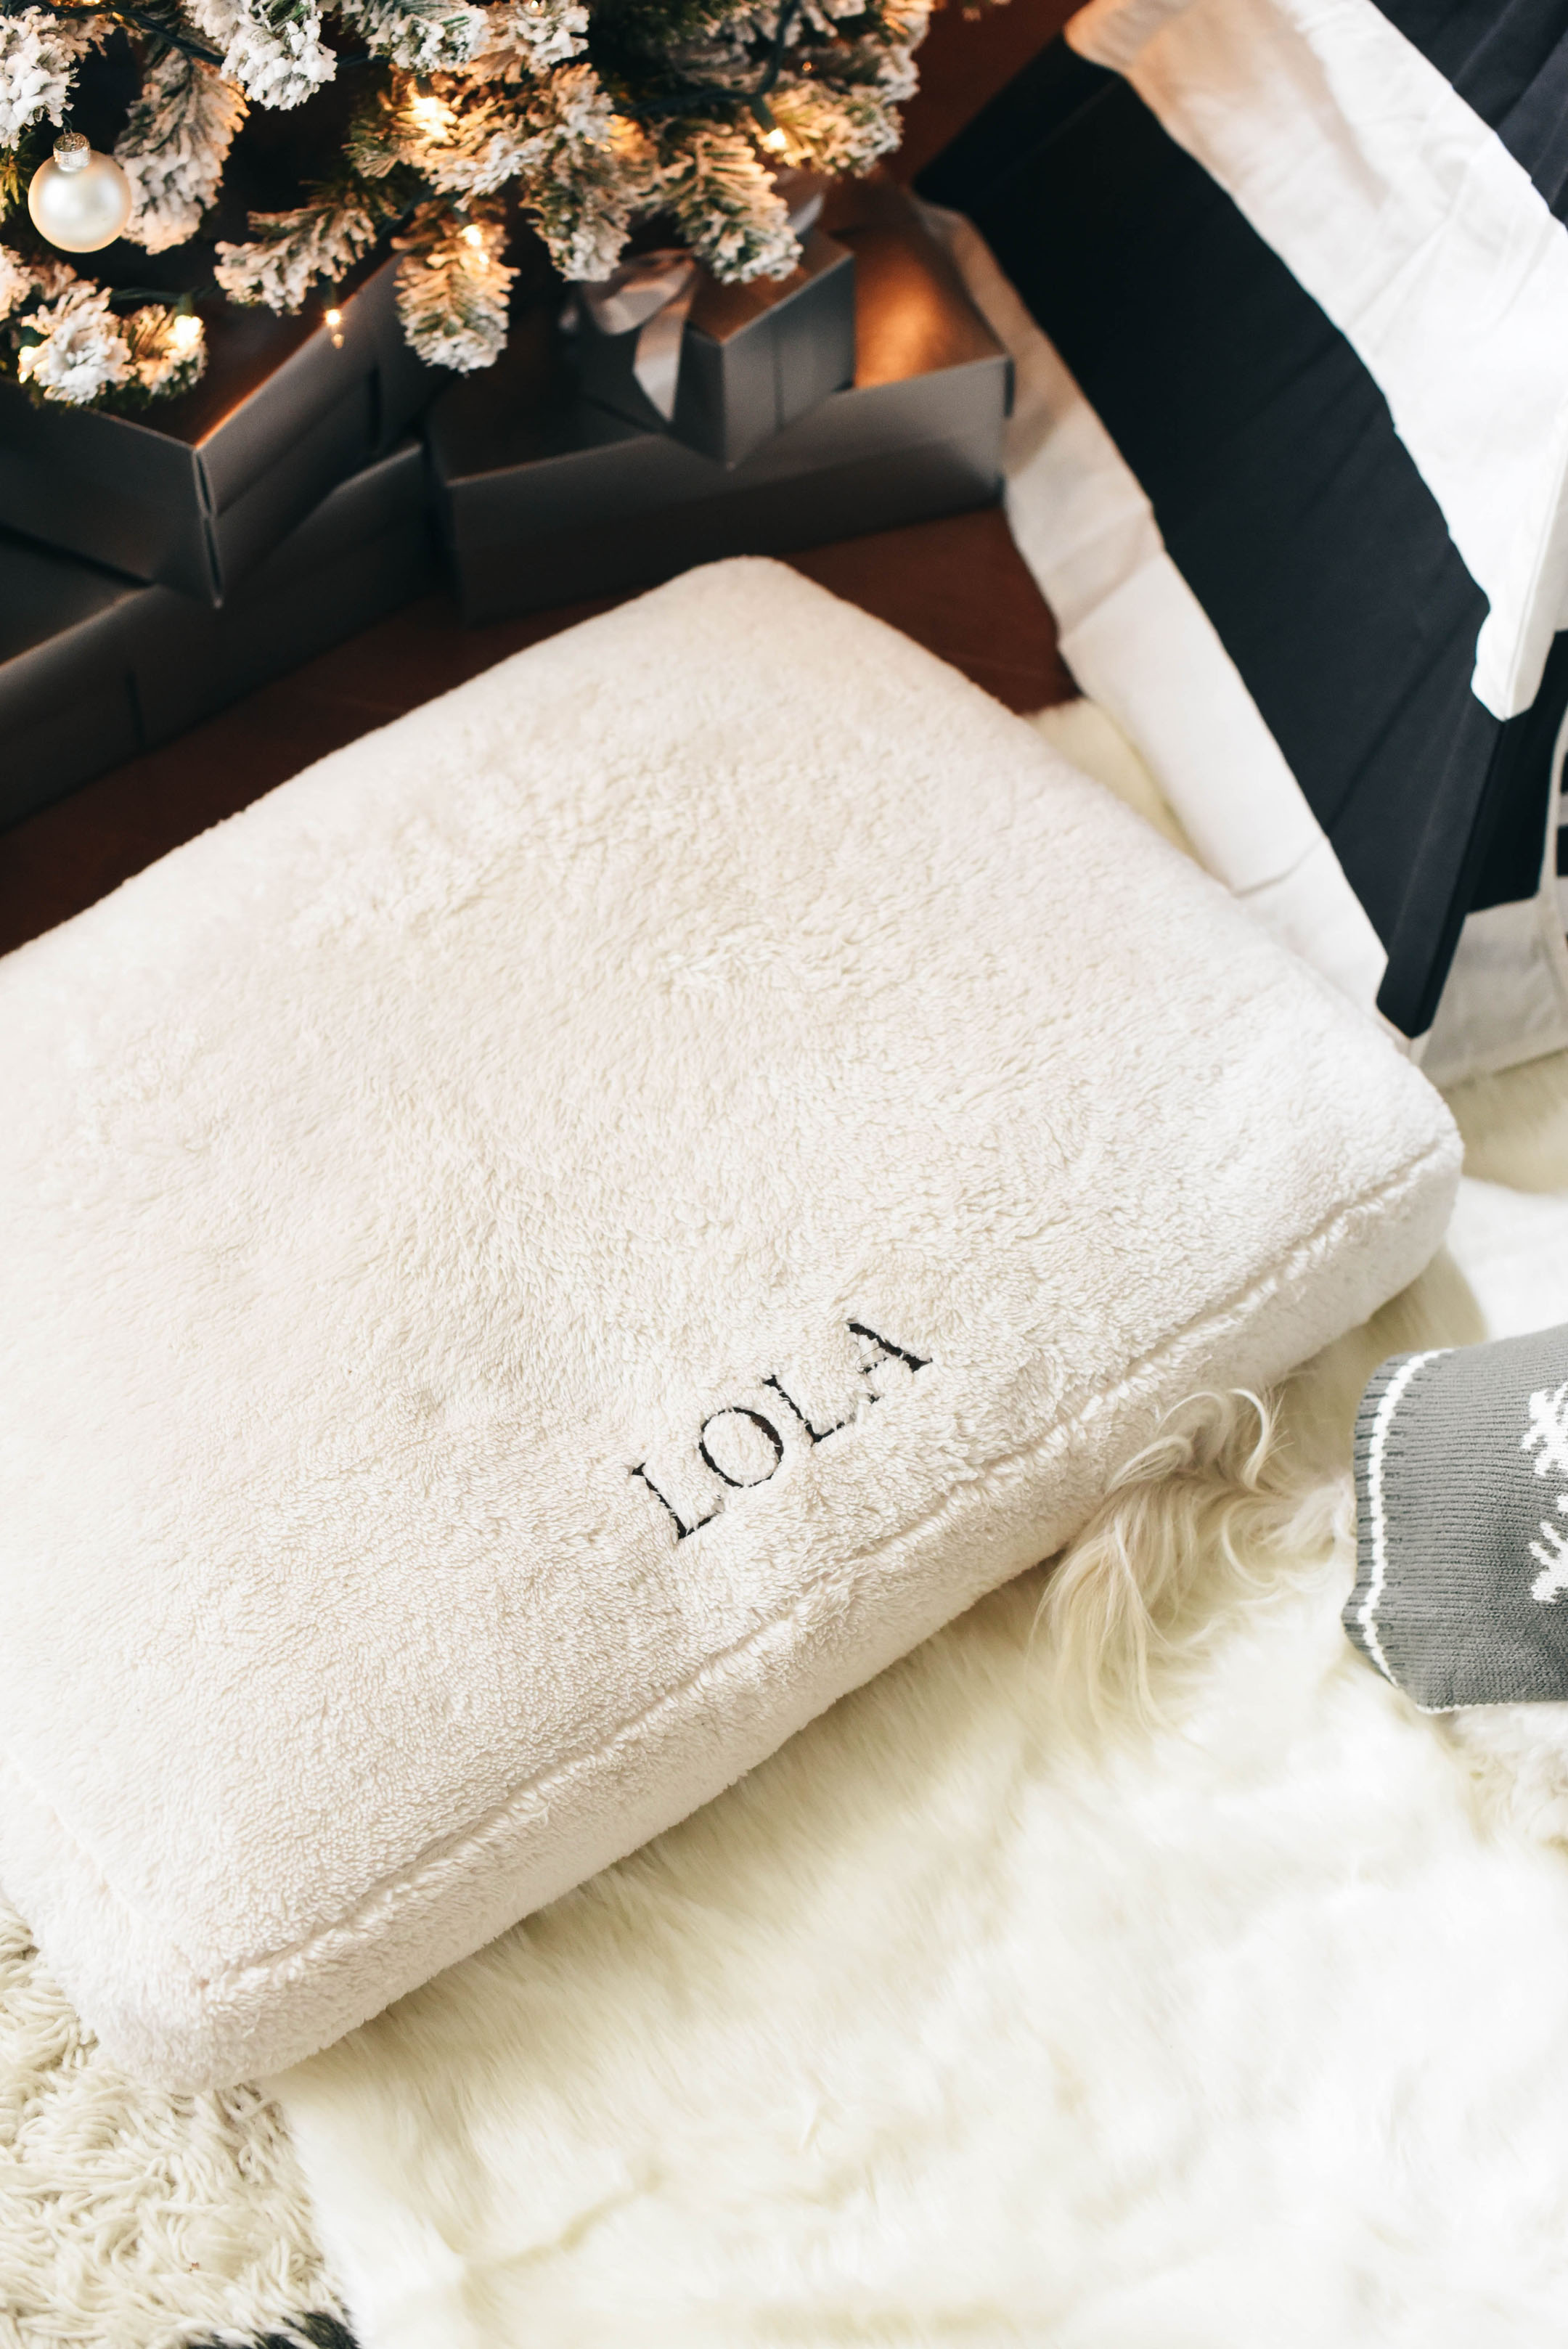 pottery-barn-white-dog-bed